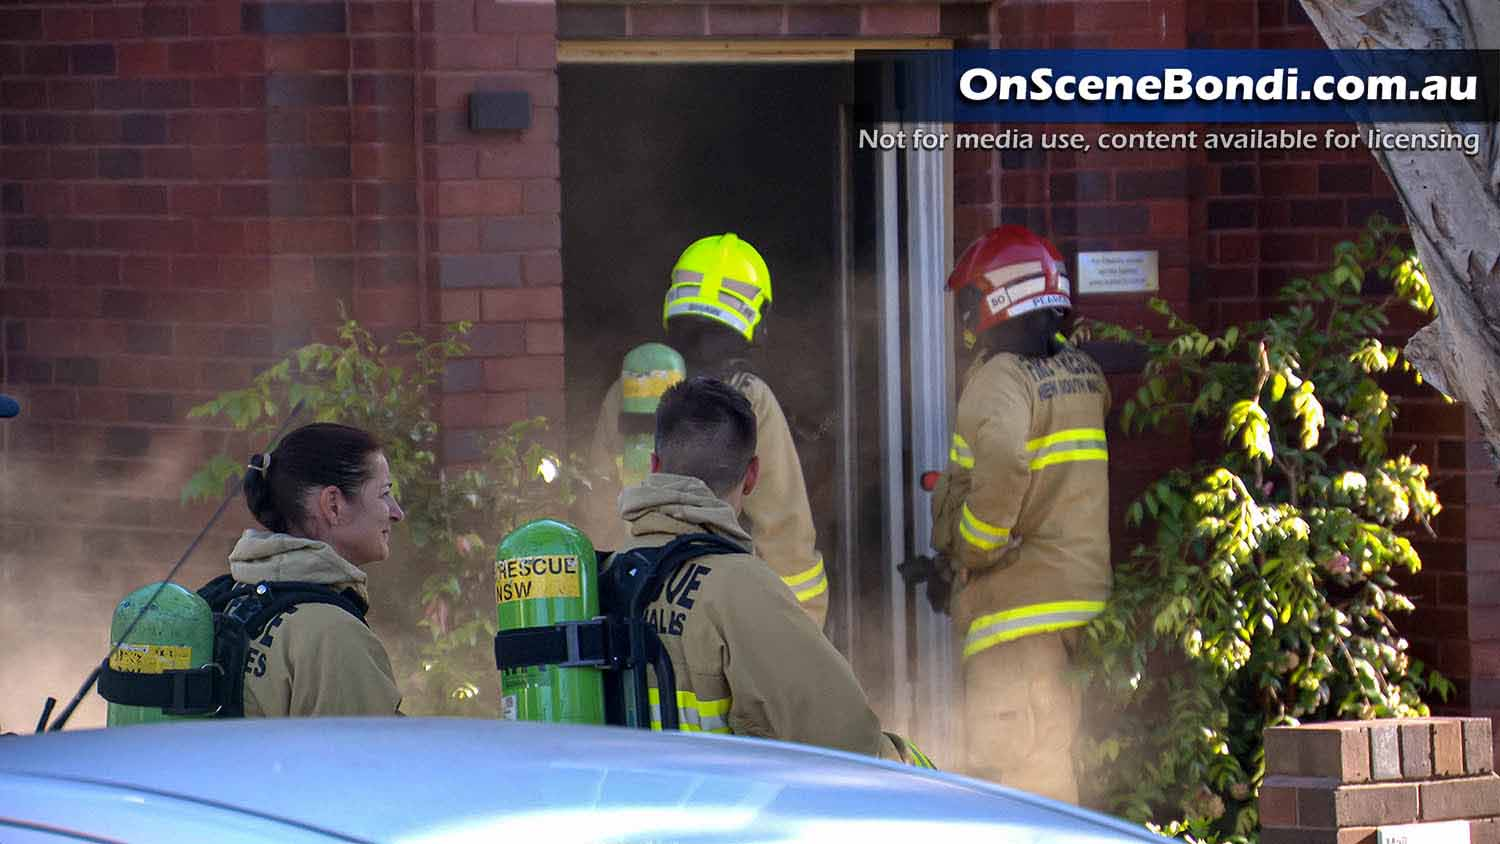 Fire fighters respond to unit blaze in Blair St Bondi